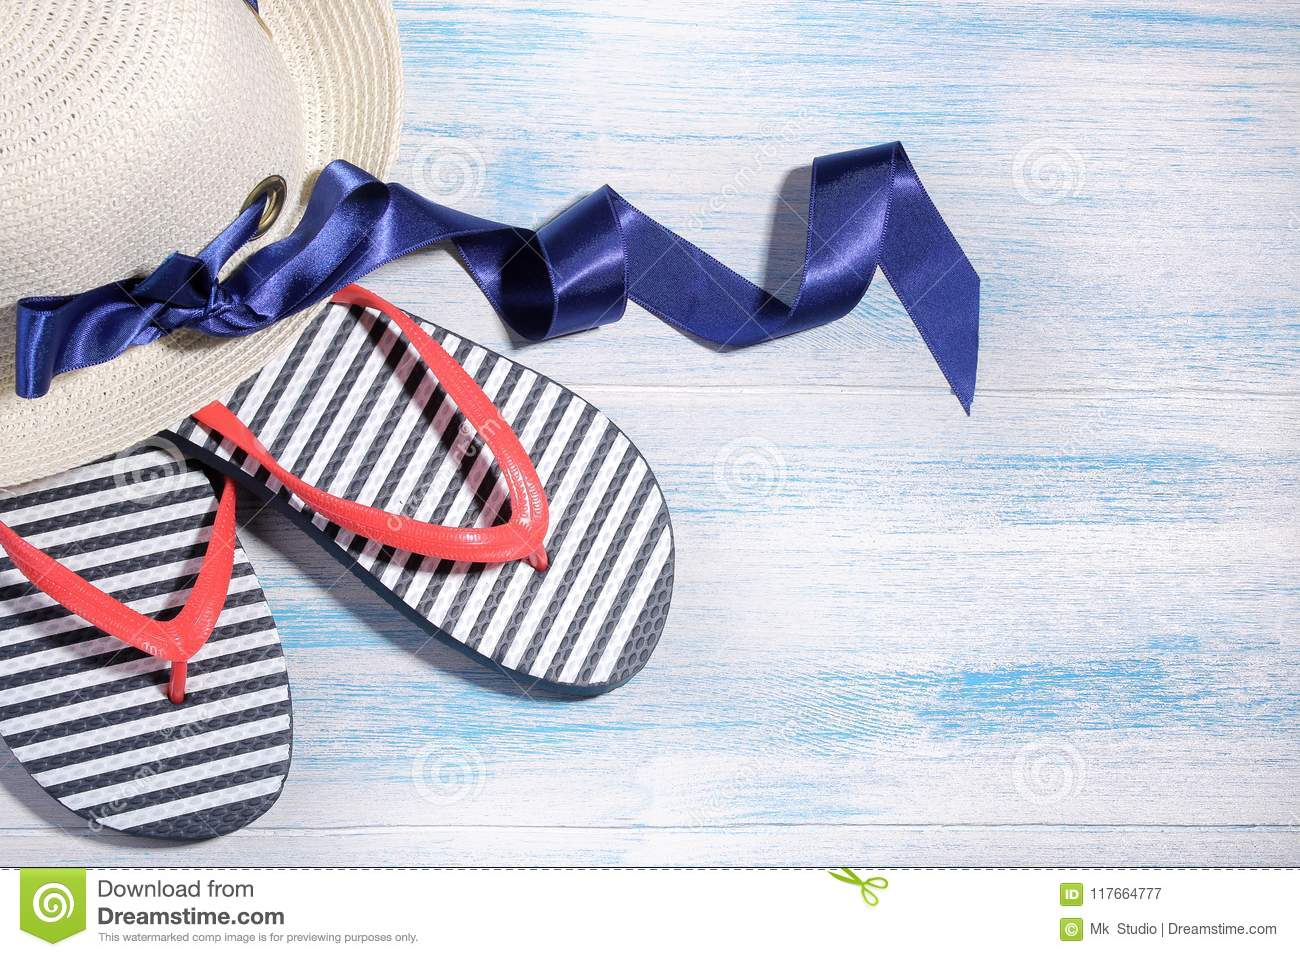 aad88b8f1136 Beach accessories. summer hat with flakes on a blue wooden background.